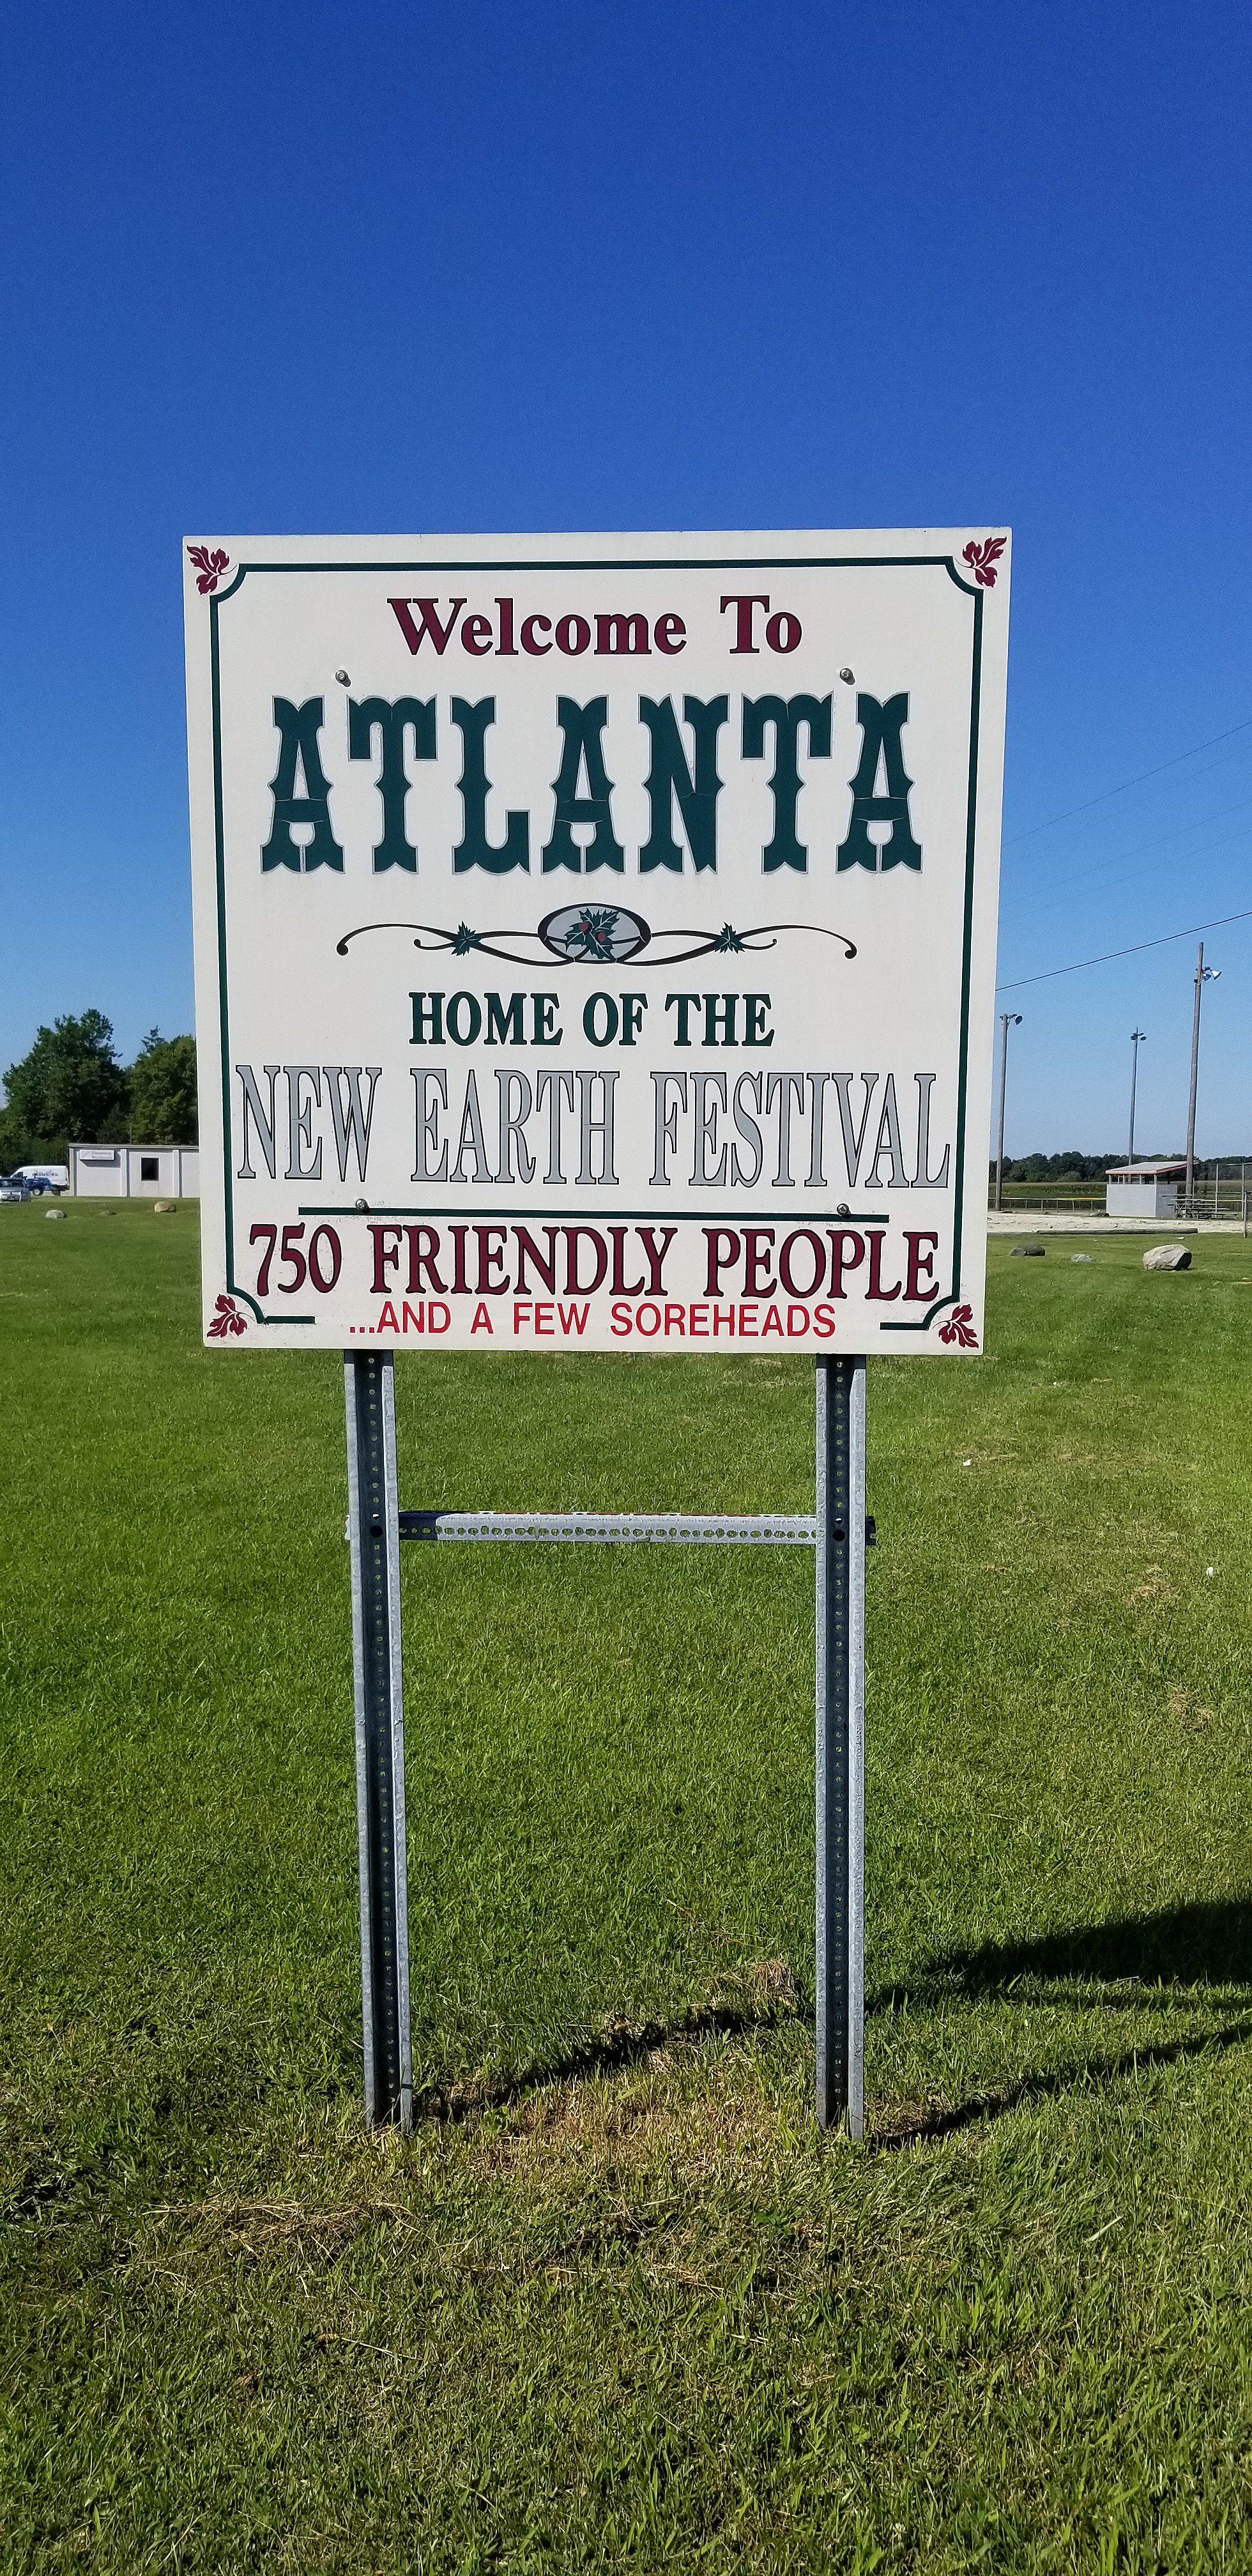 File:Sign welcoming visitors to Atlanta Indiana.jpg - Wikimedia Commons